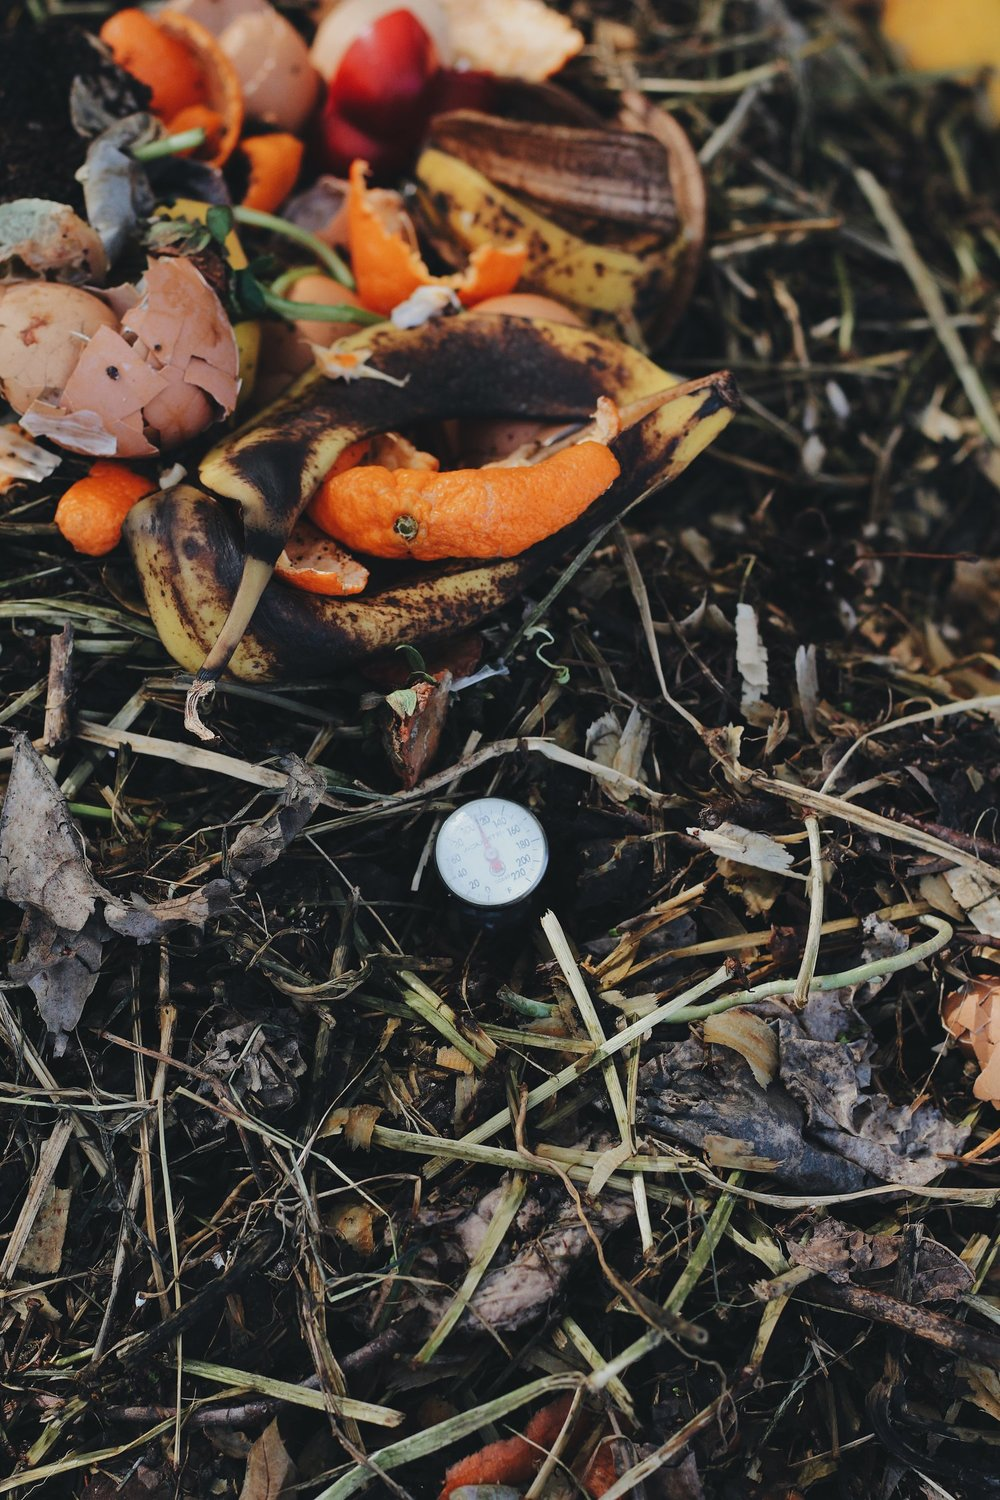 More Composting Tips